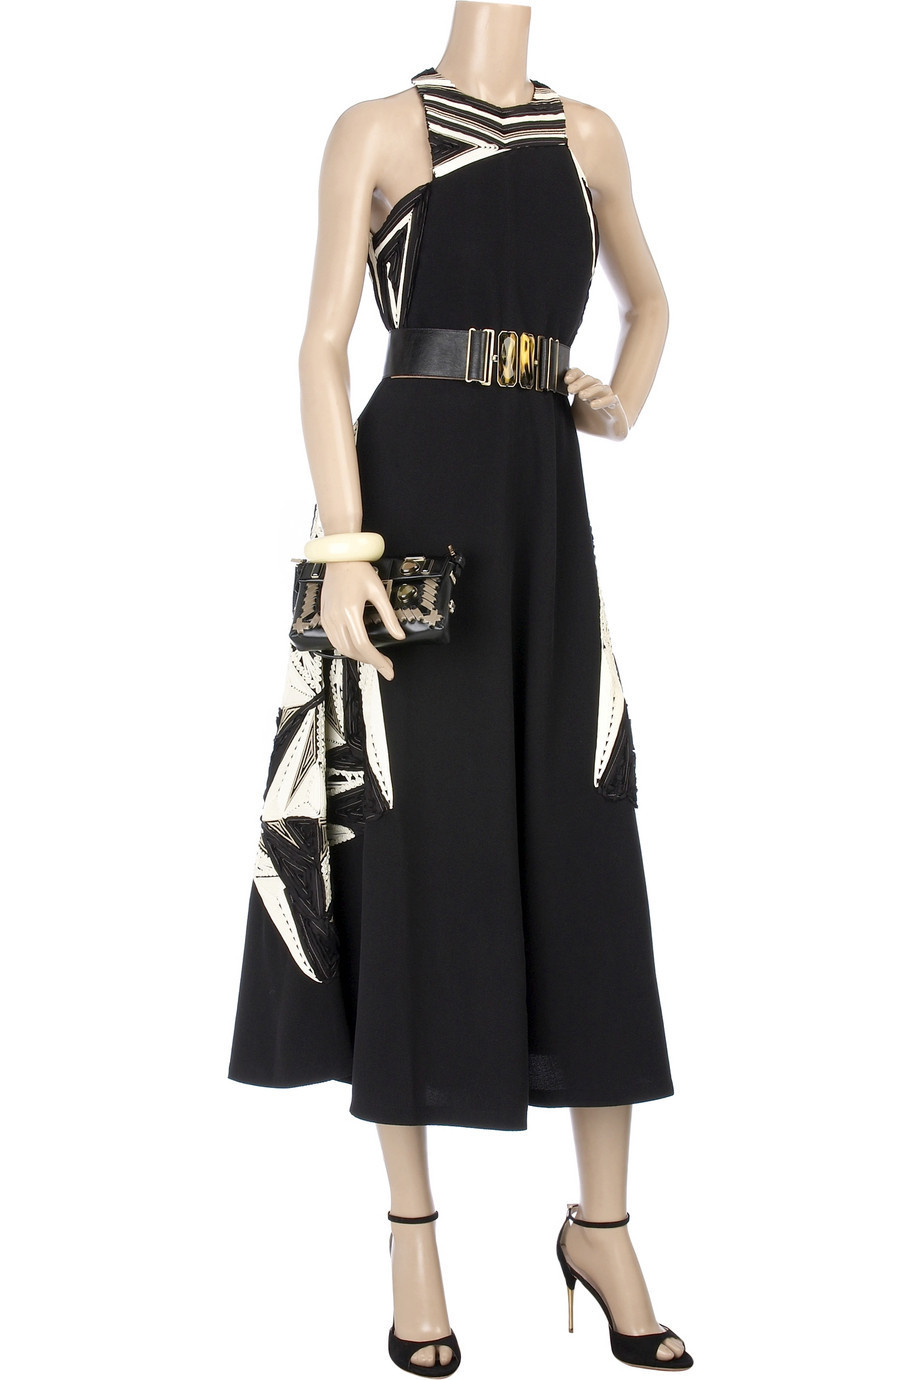 Fendi Embroidered halter dress | NET-A-PORTER.COM from net-a-porter.com